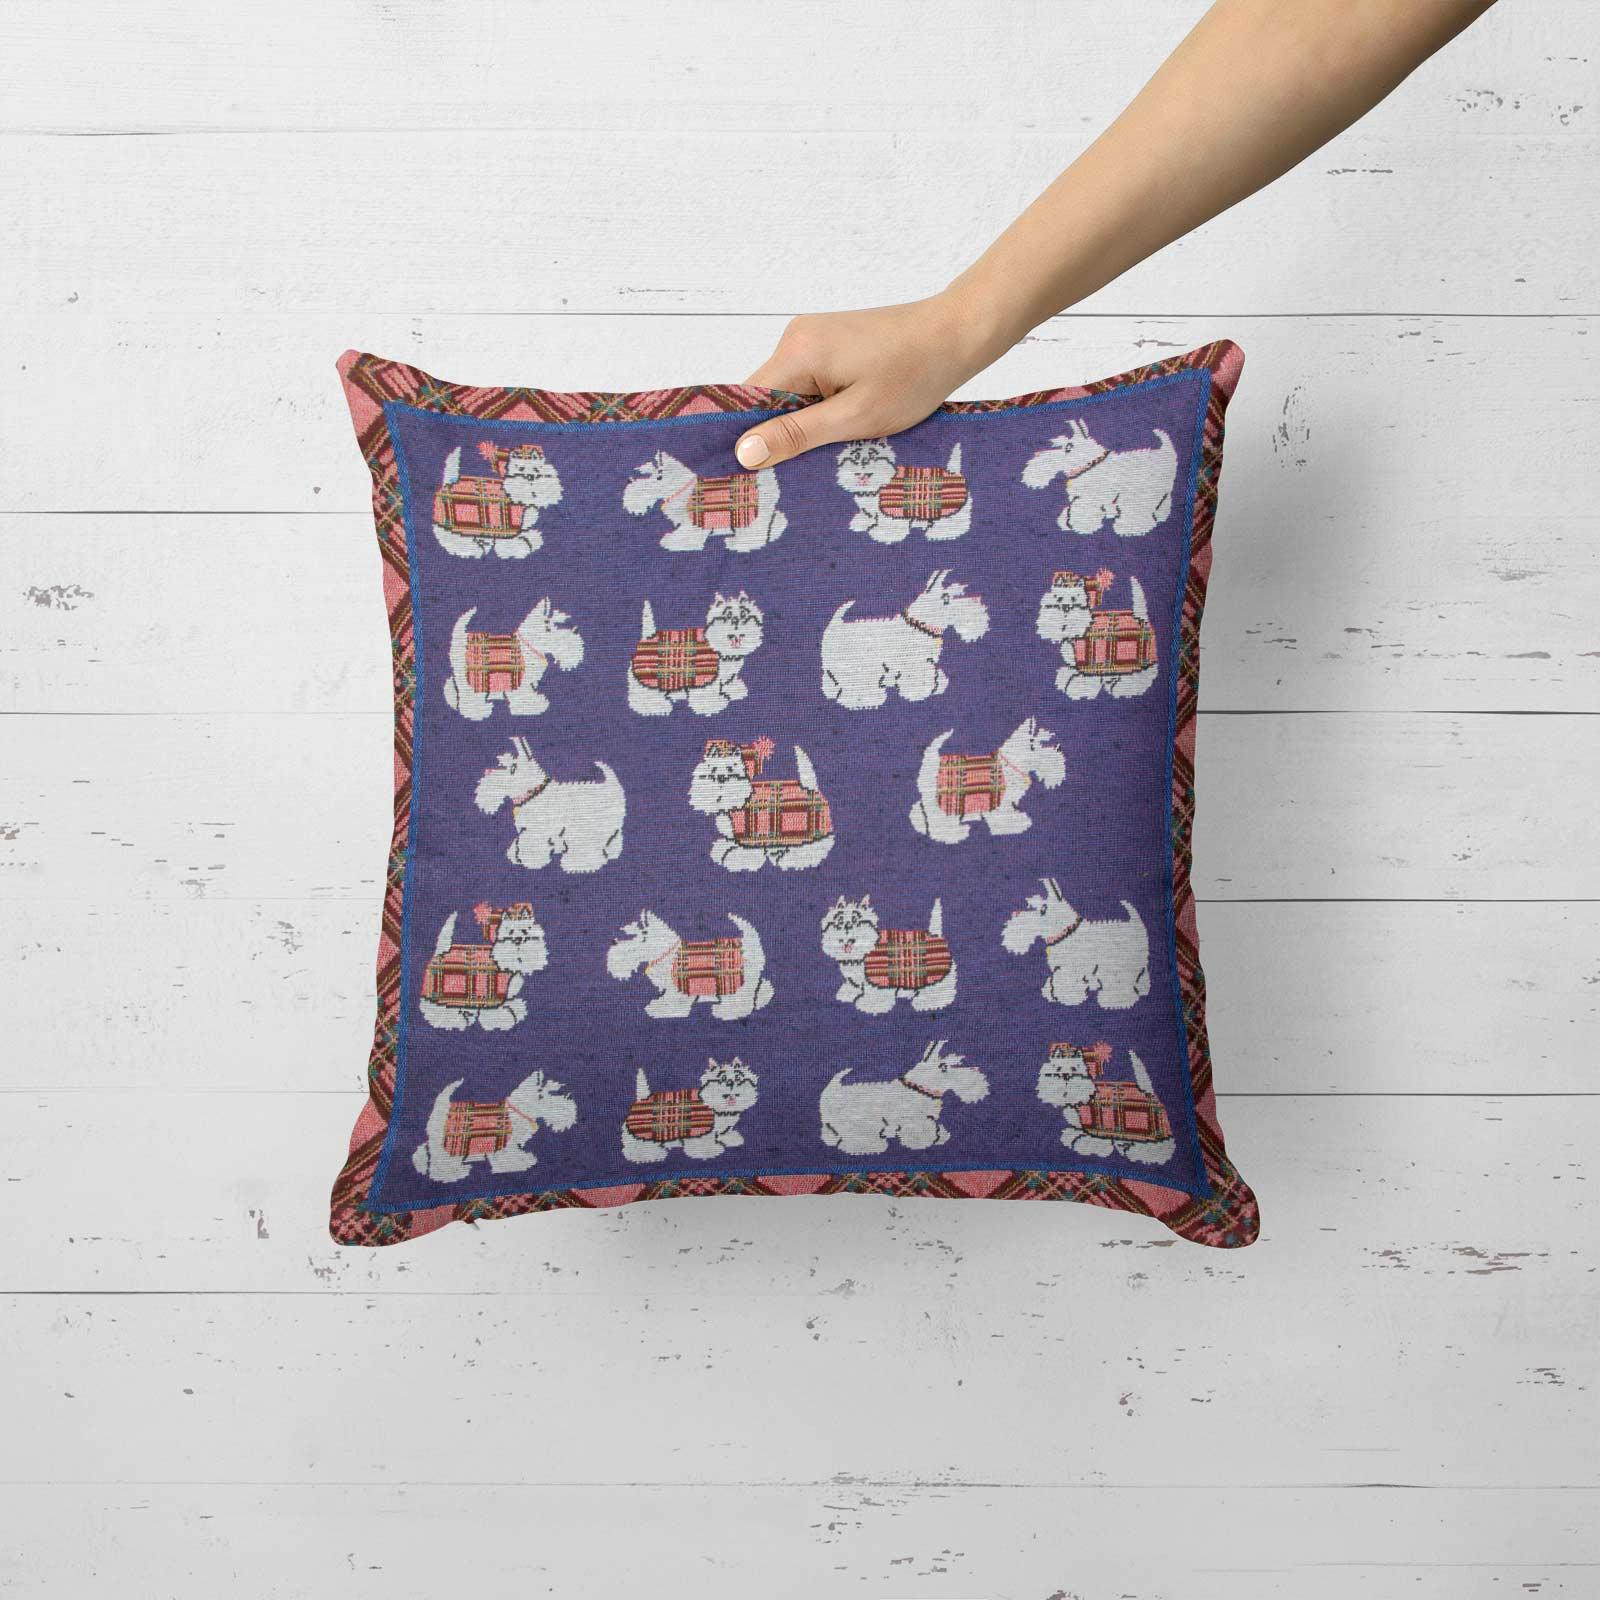 Tapestry-Cushion-Covers-Vintage-Pillow-Cover-Collection-18-034-45cm-Filled-Cushions thumbnail 237